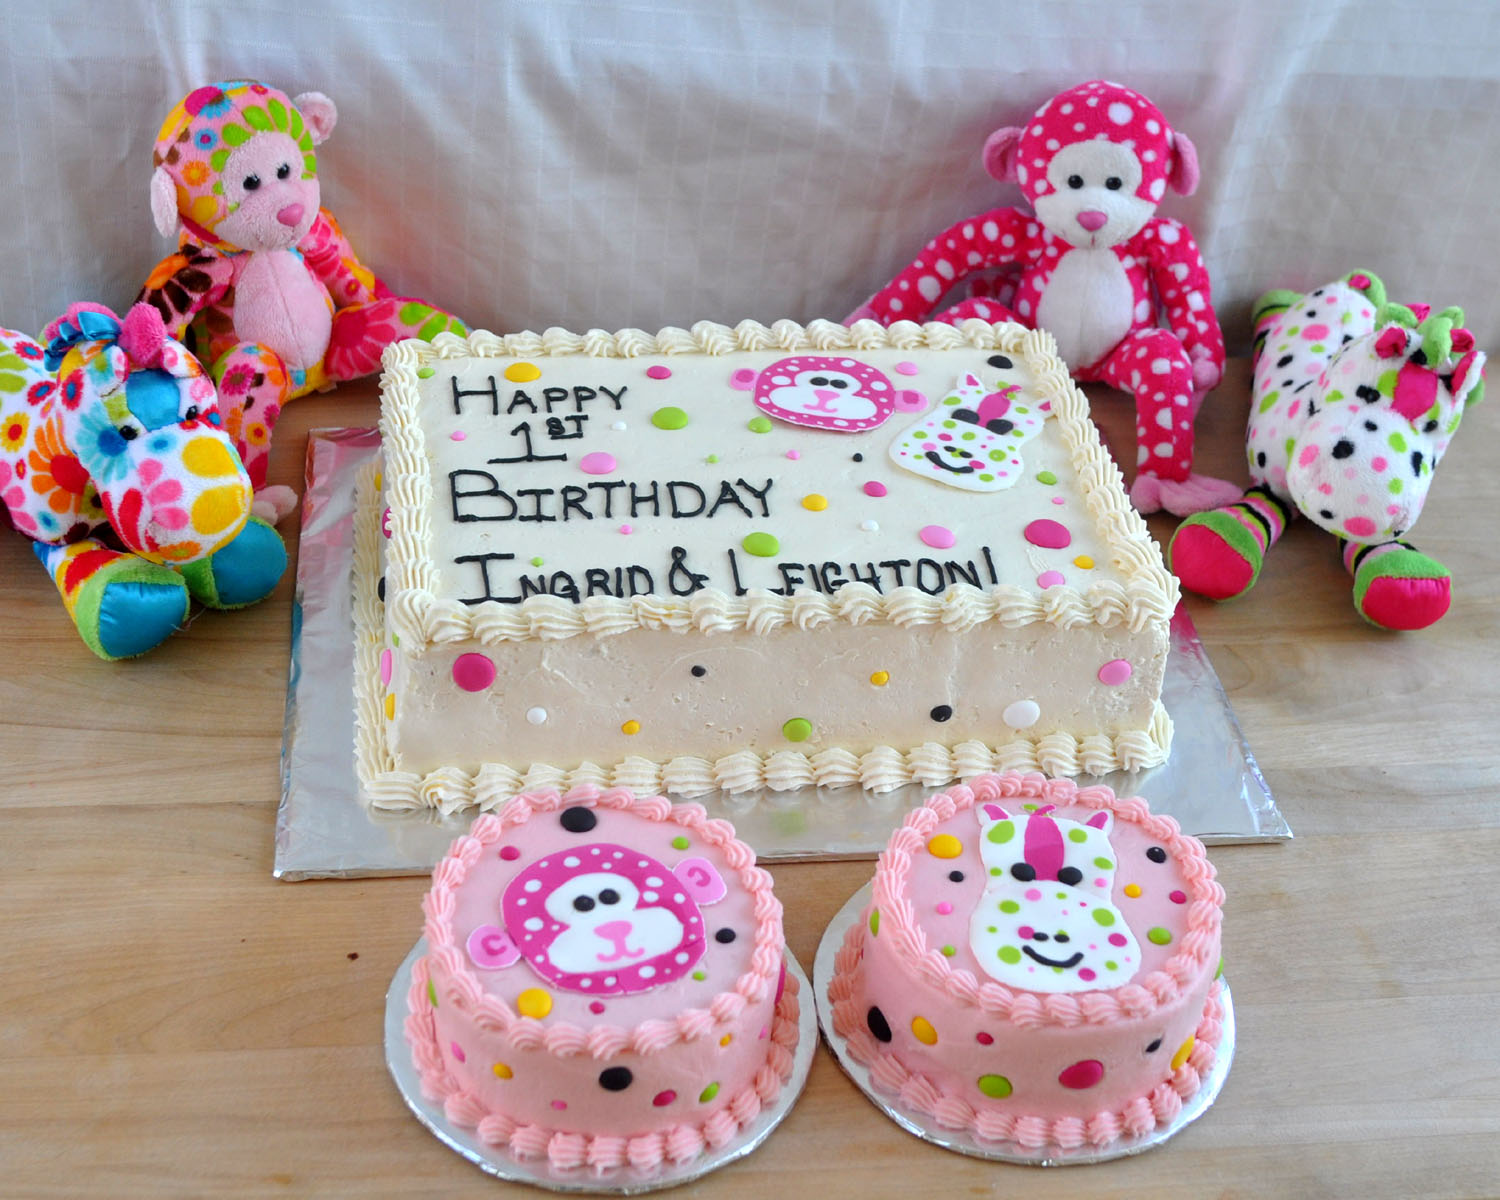 Simple Birthday Cake Decorating Ideas Royal icing cake decorations